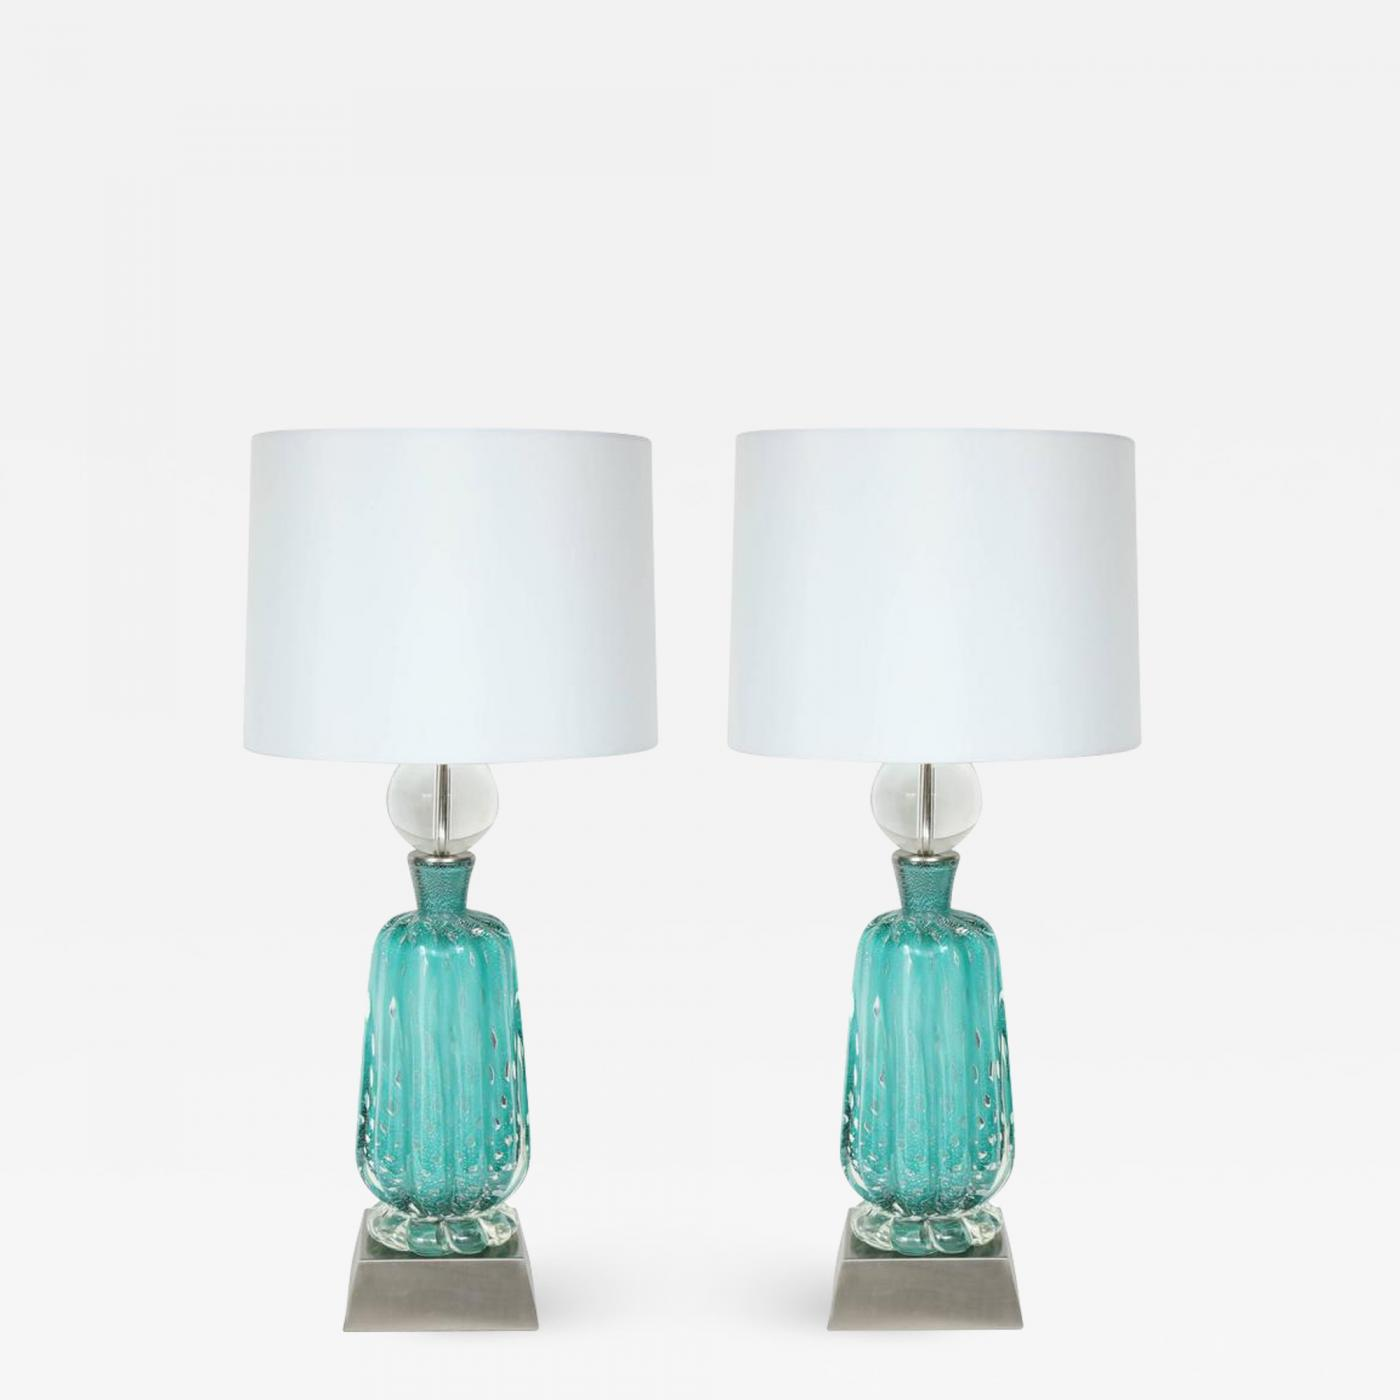 Picture of: Ercole Barovier Barovier Turquoise Murano Glass Lamps